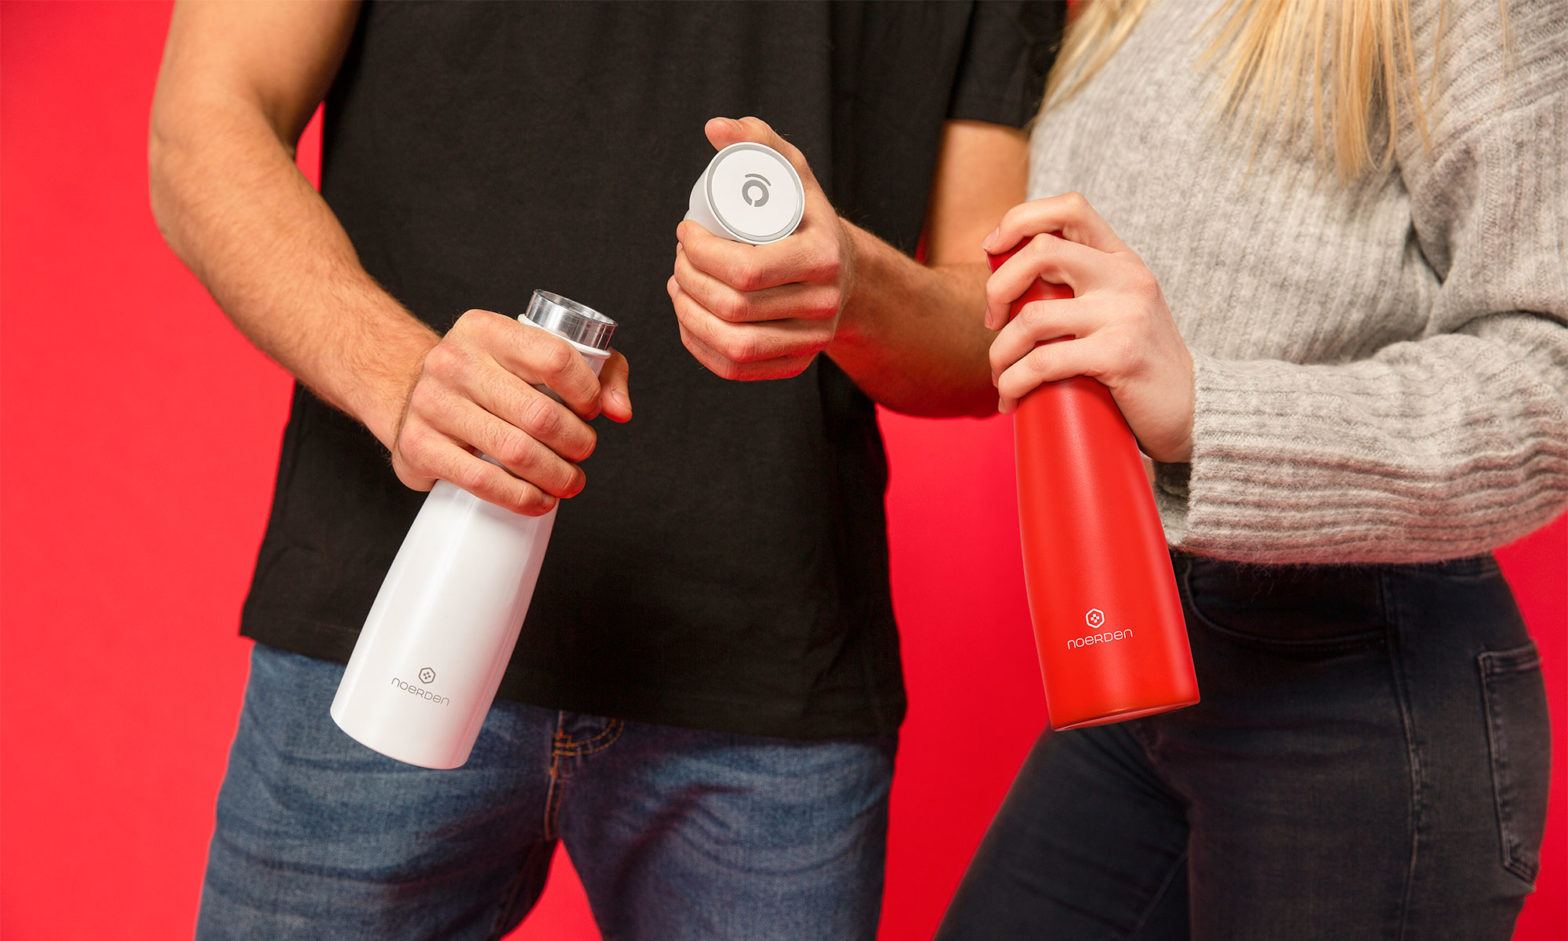 LIZ Smart Self-cleaning Bottle